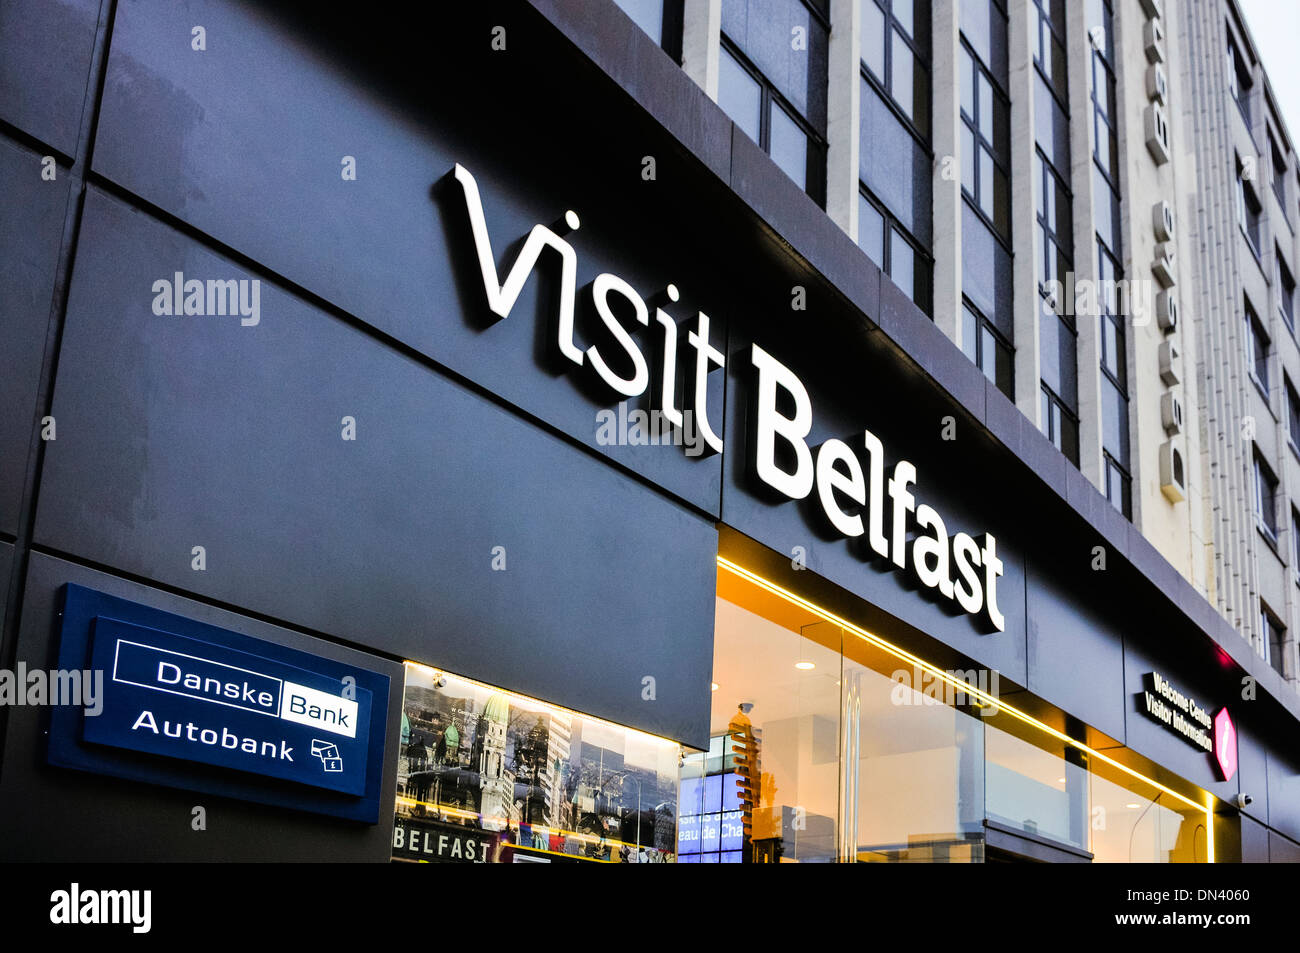 New Visit Belfast visitor and tourist centre in Belfast - Stock Image